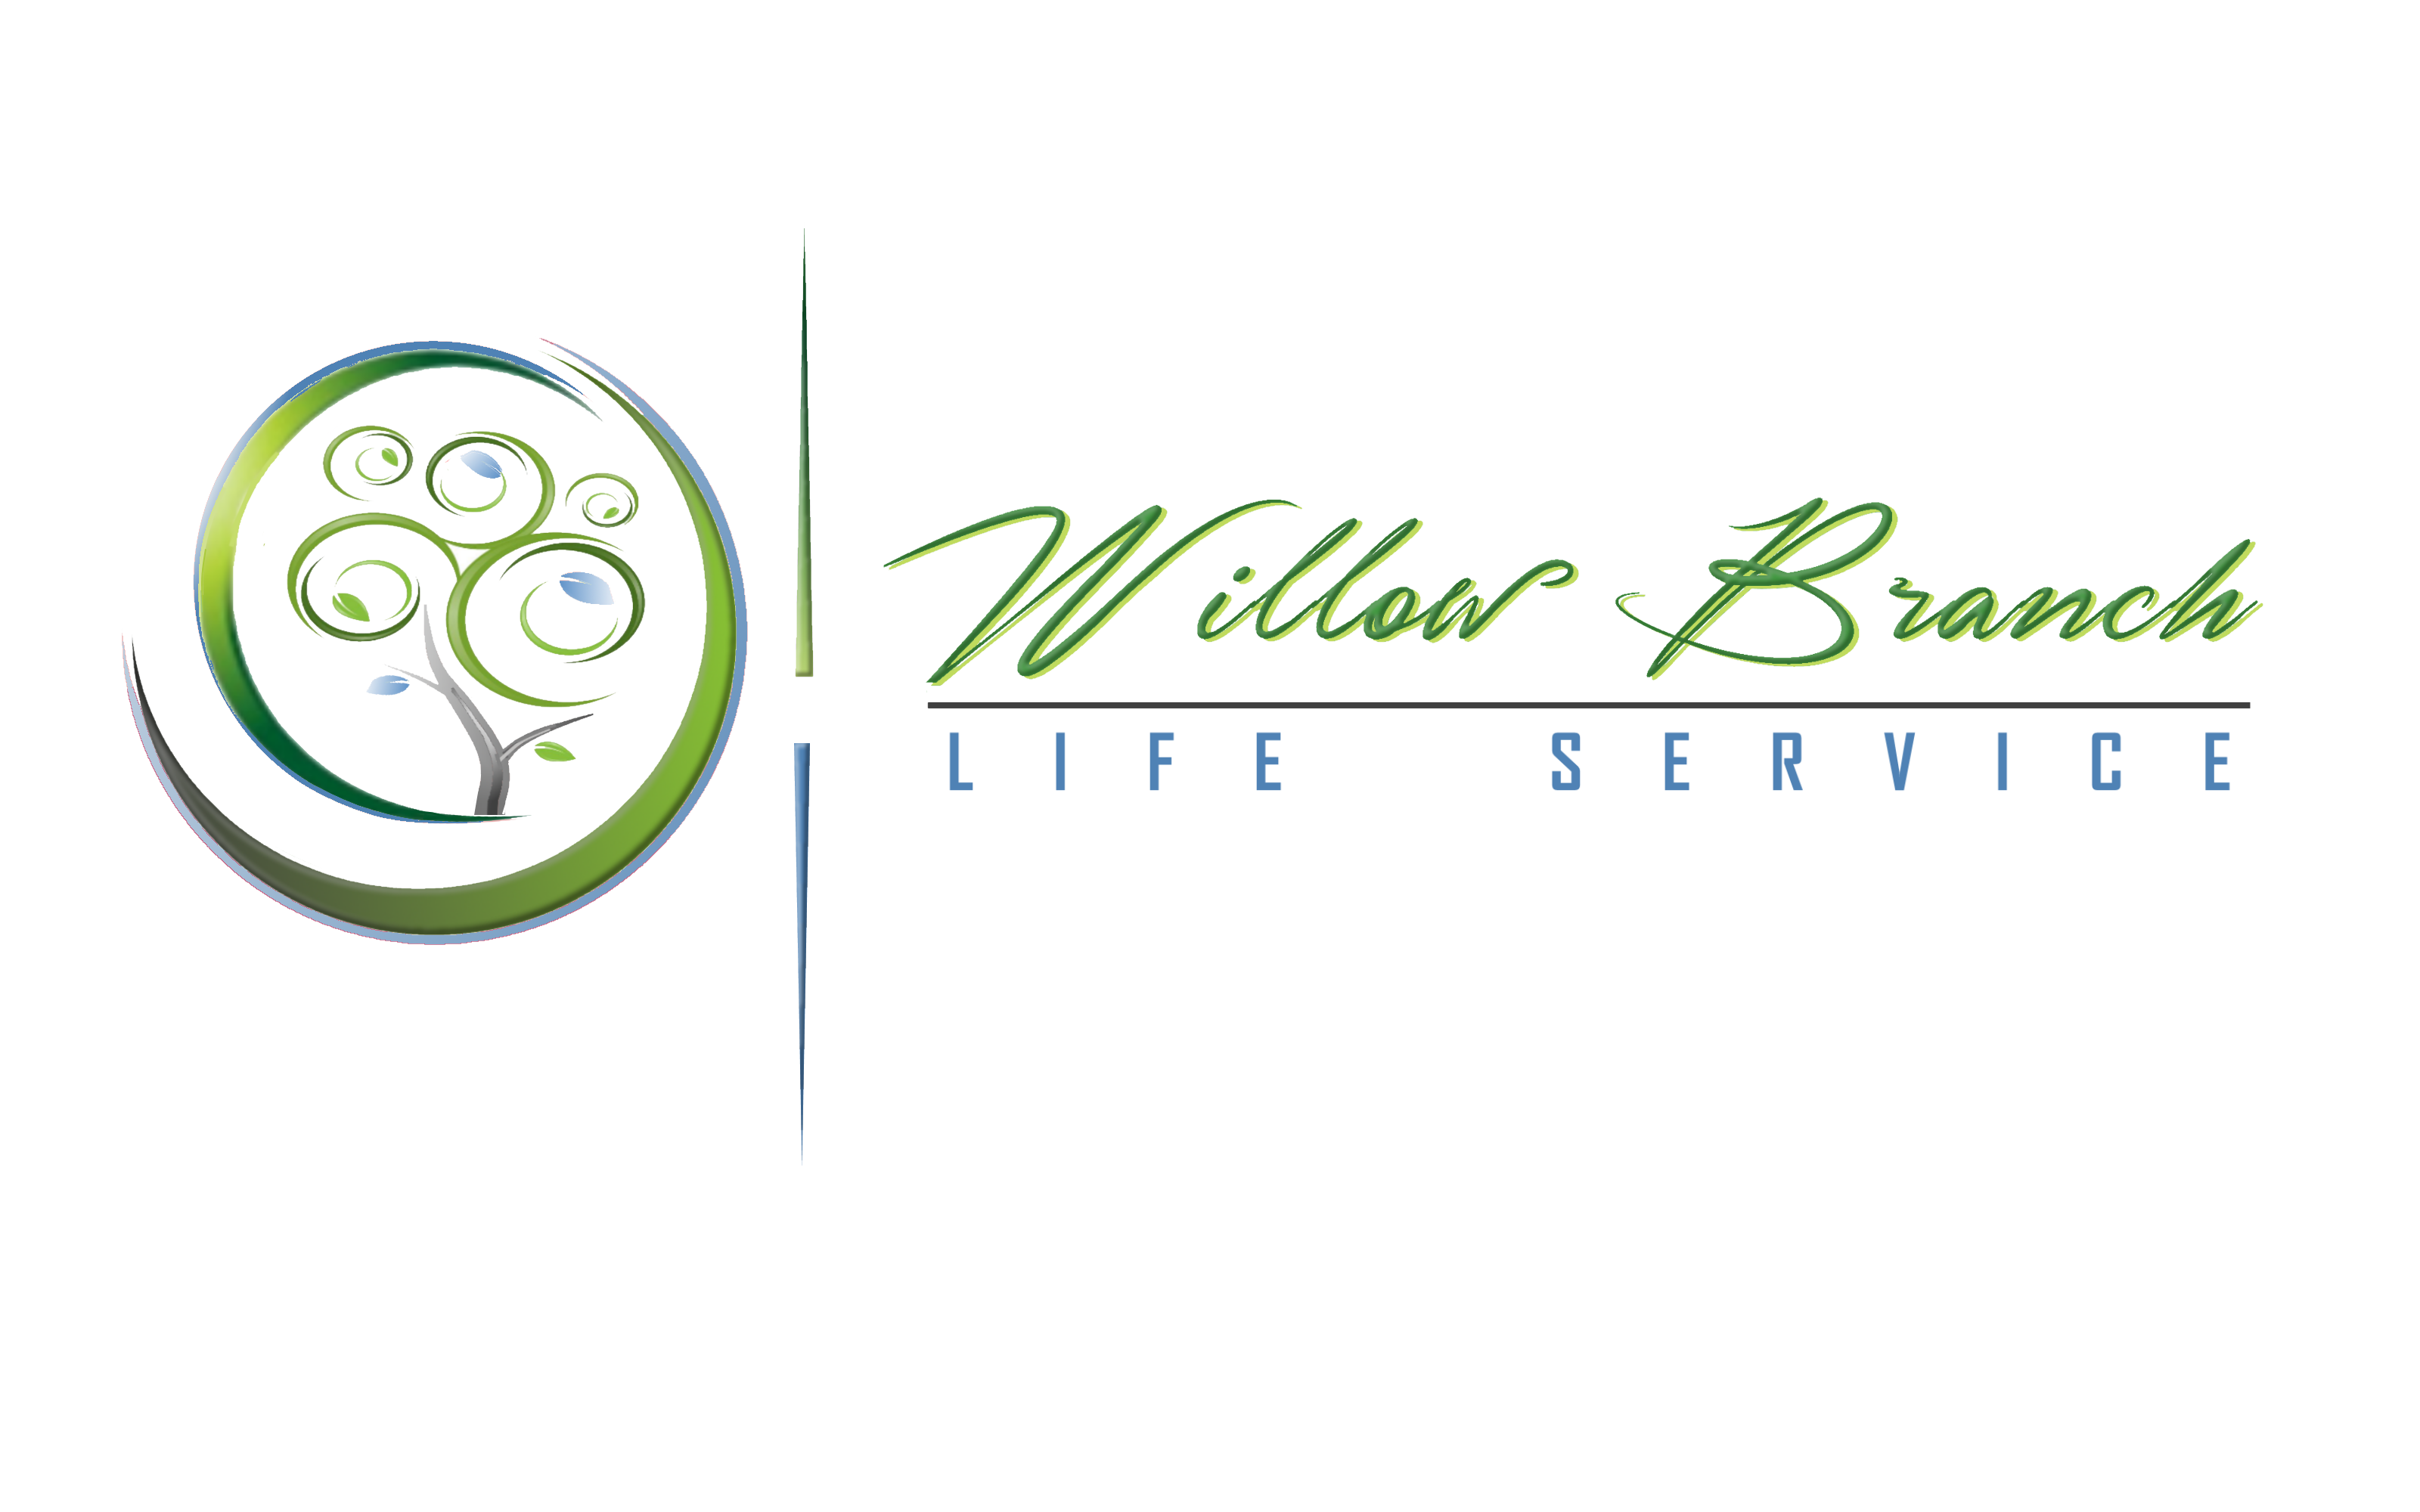 Logo Design by Roberto Bassi - Entry No. 390 in the Logo Design Contest Artistic Logo Design for Willow Branch Life Service.